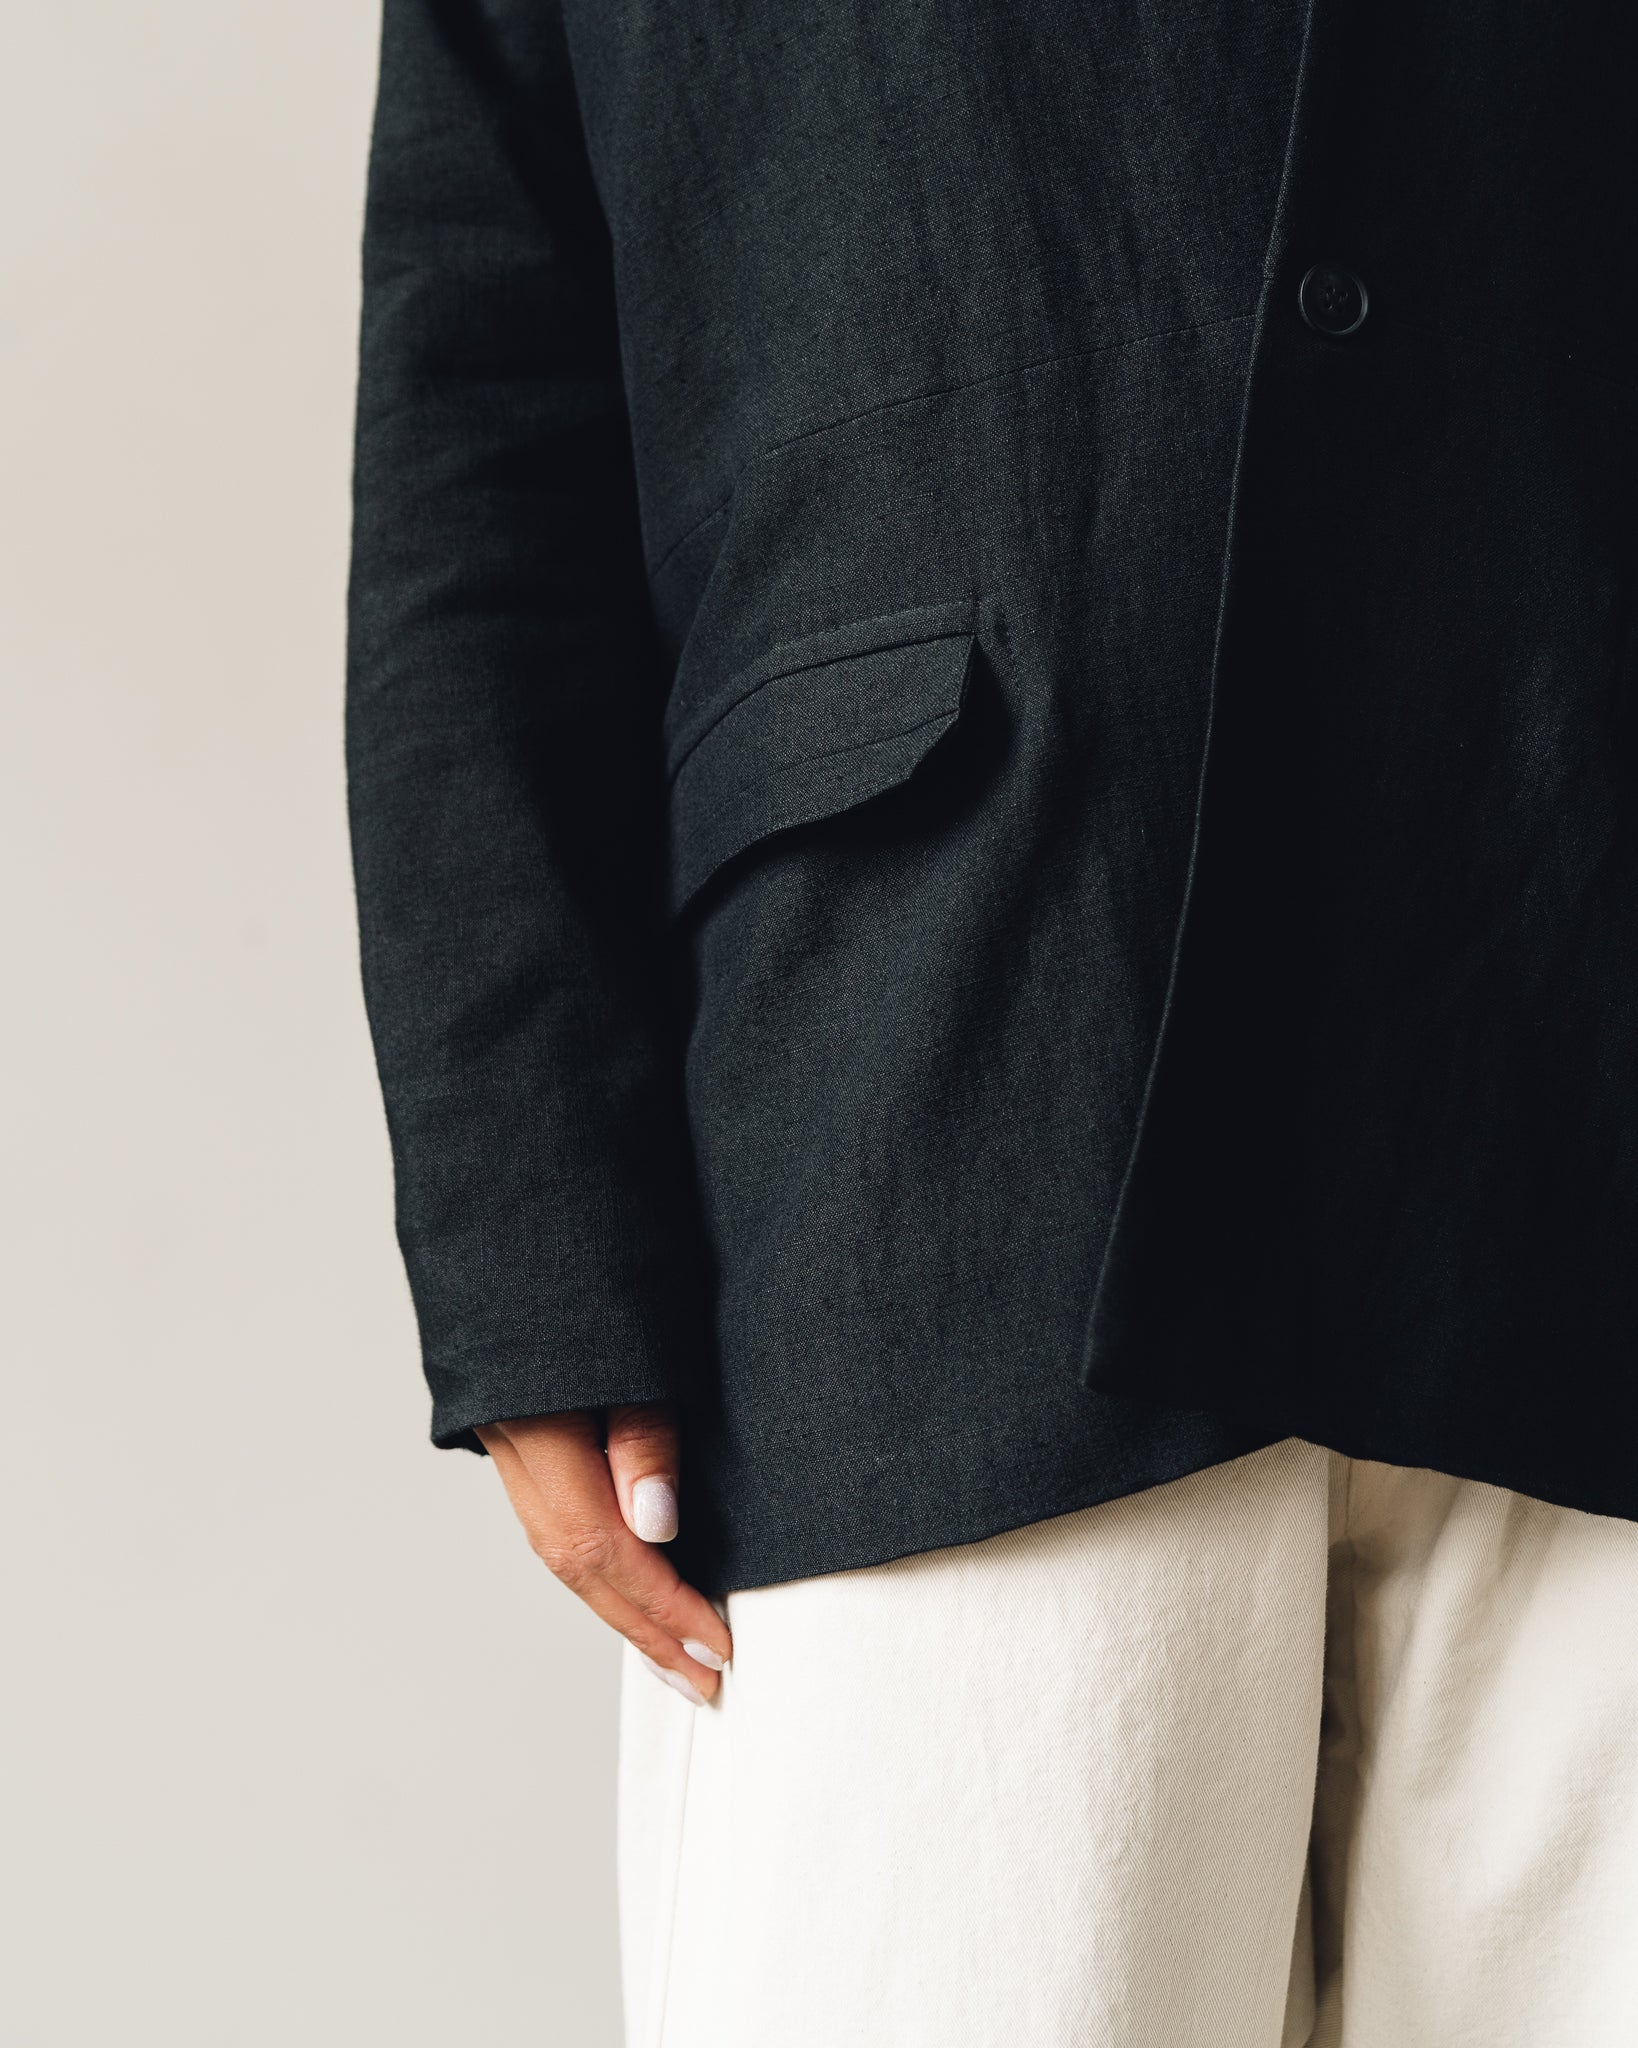 Jan-Jan Van Essche Jacket #36, Black Wool/Linen